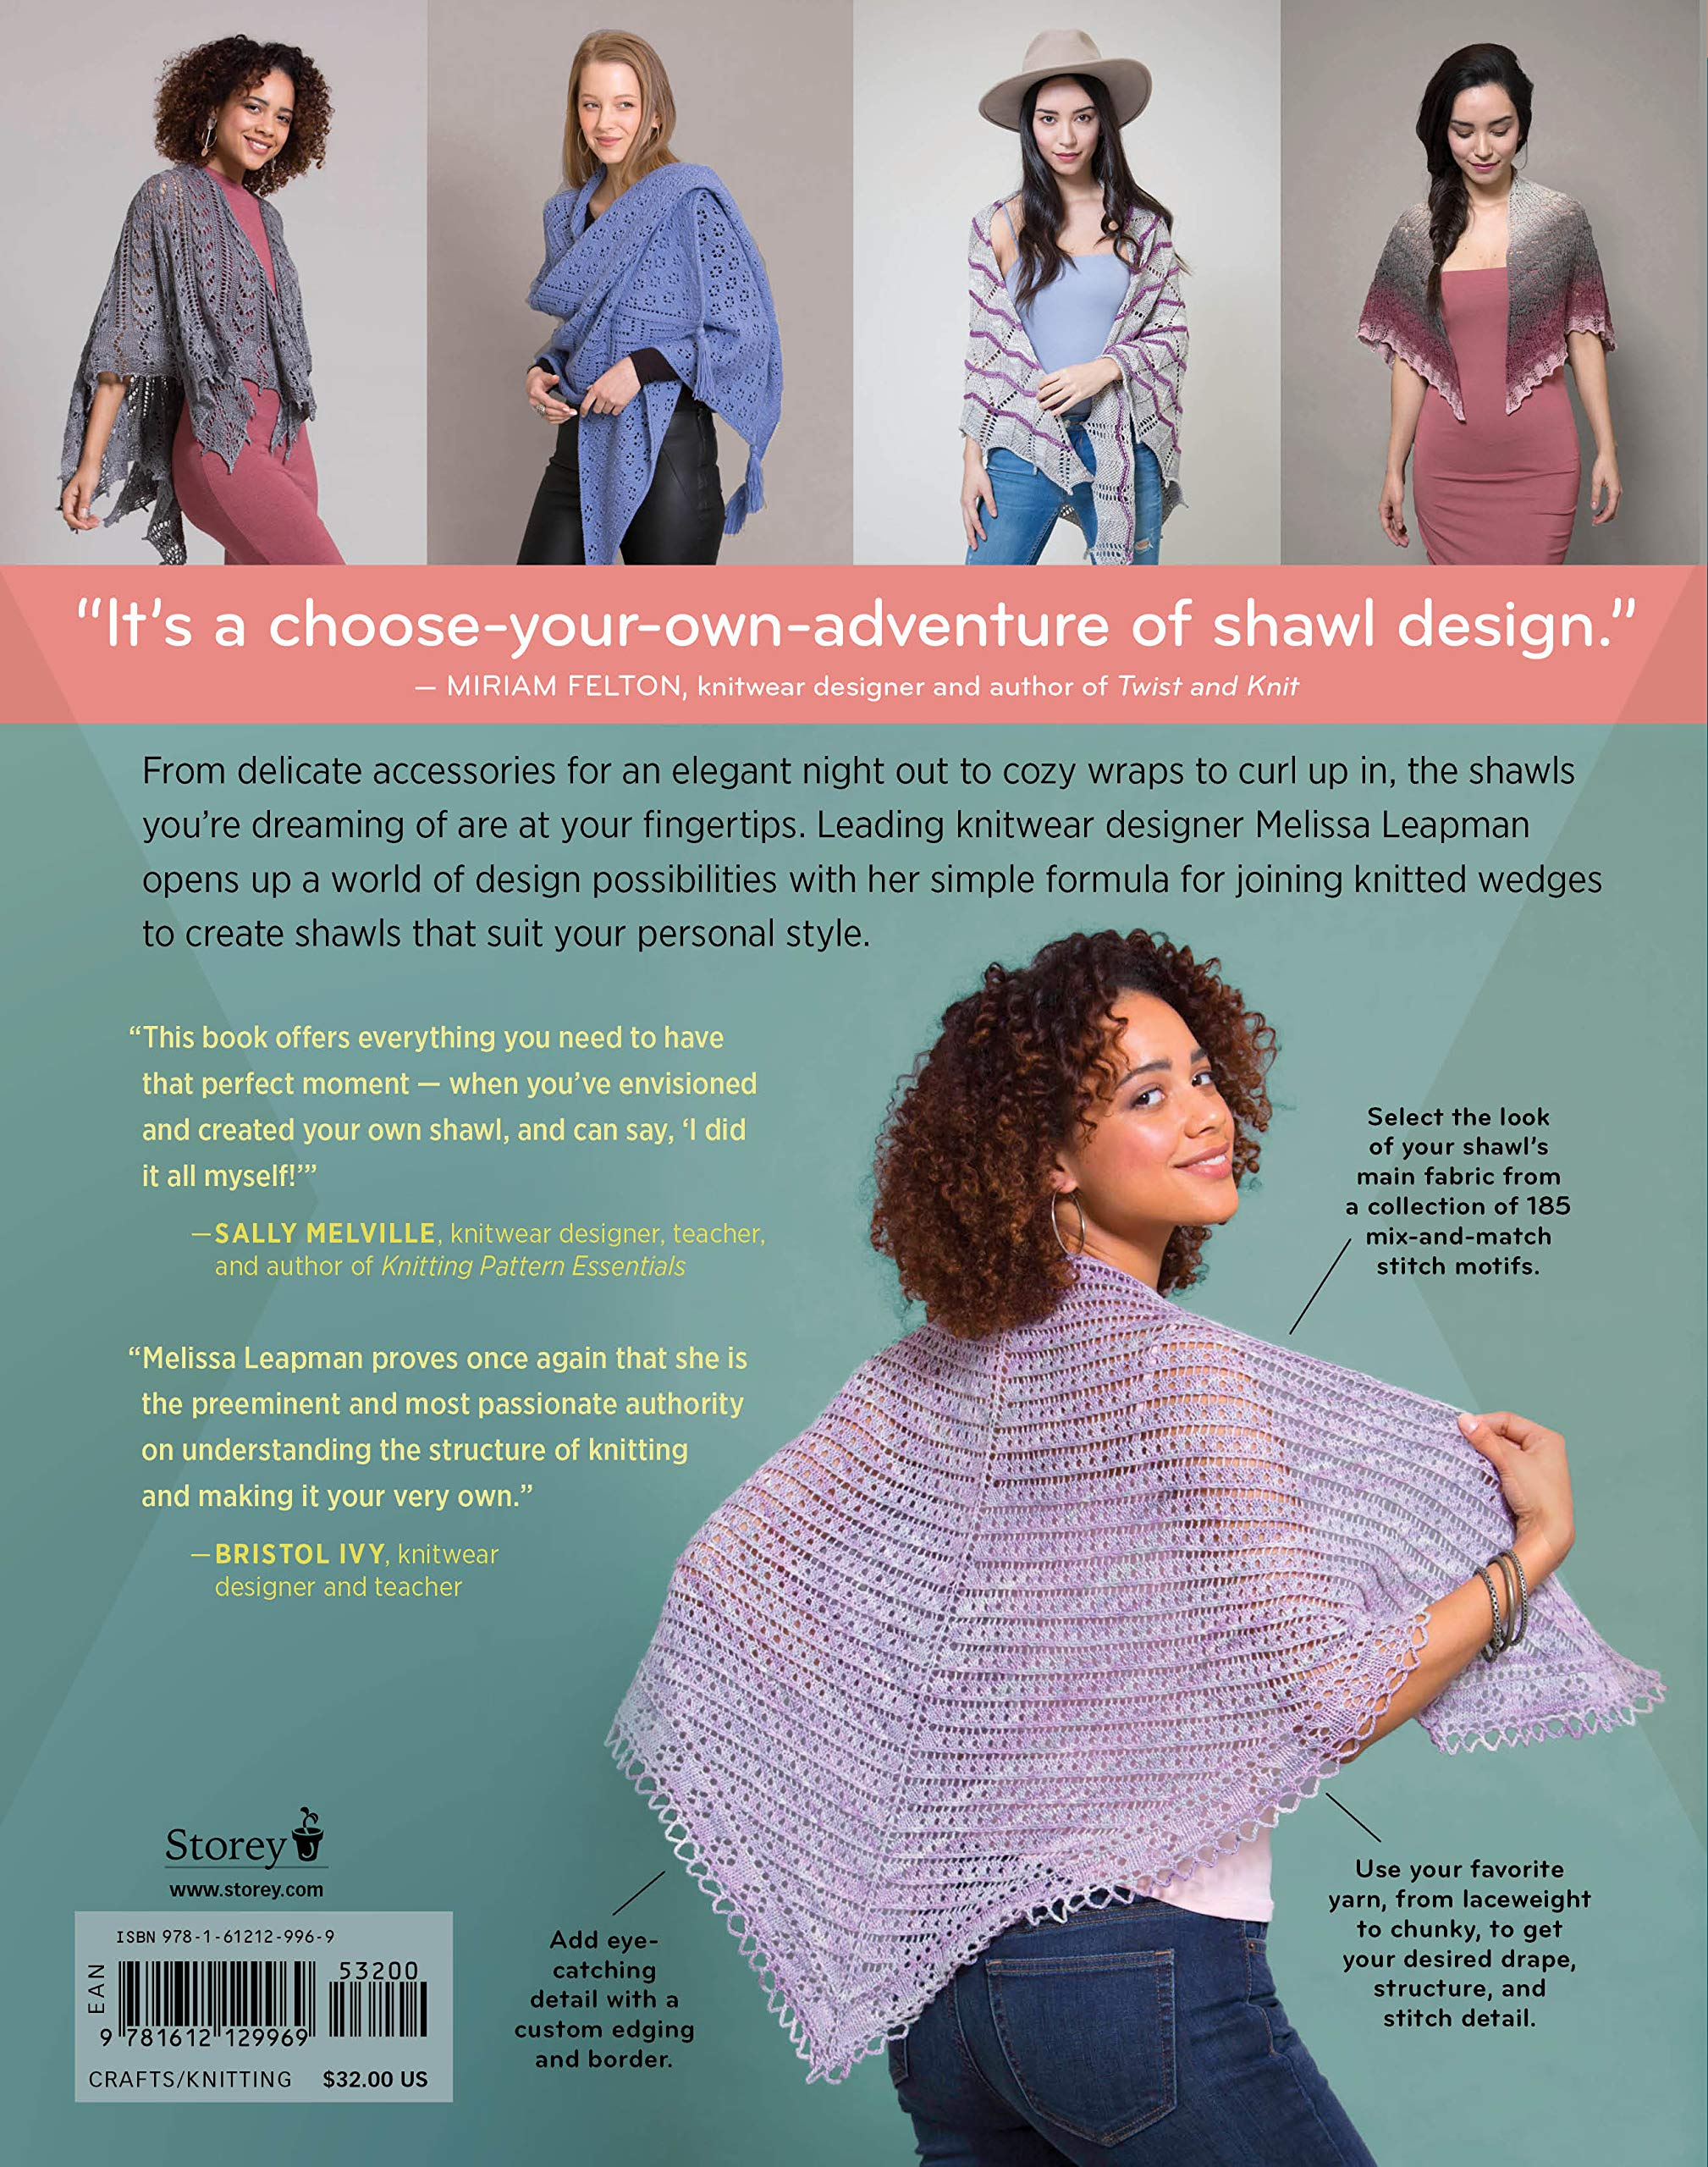 84dfb644361be0 Amazon.com: Knitting Modular Shawls, Wraps, and Stoles: An Easy, Innovative  Technique for Creating Custom Designs, with 185 Stitch Patterns  (9781612129969): ...